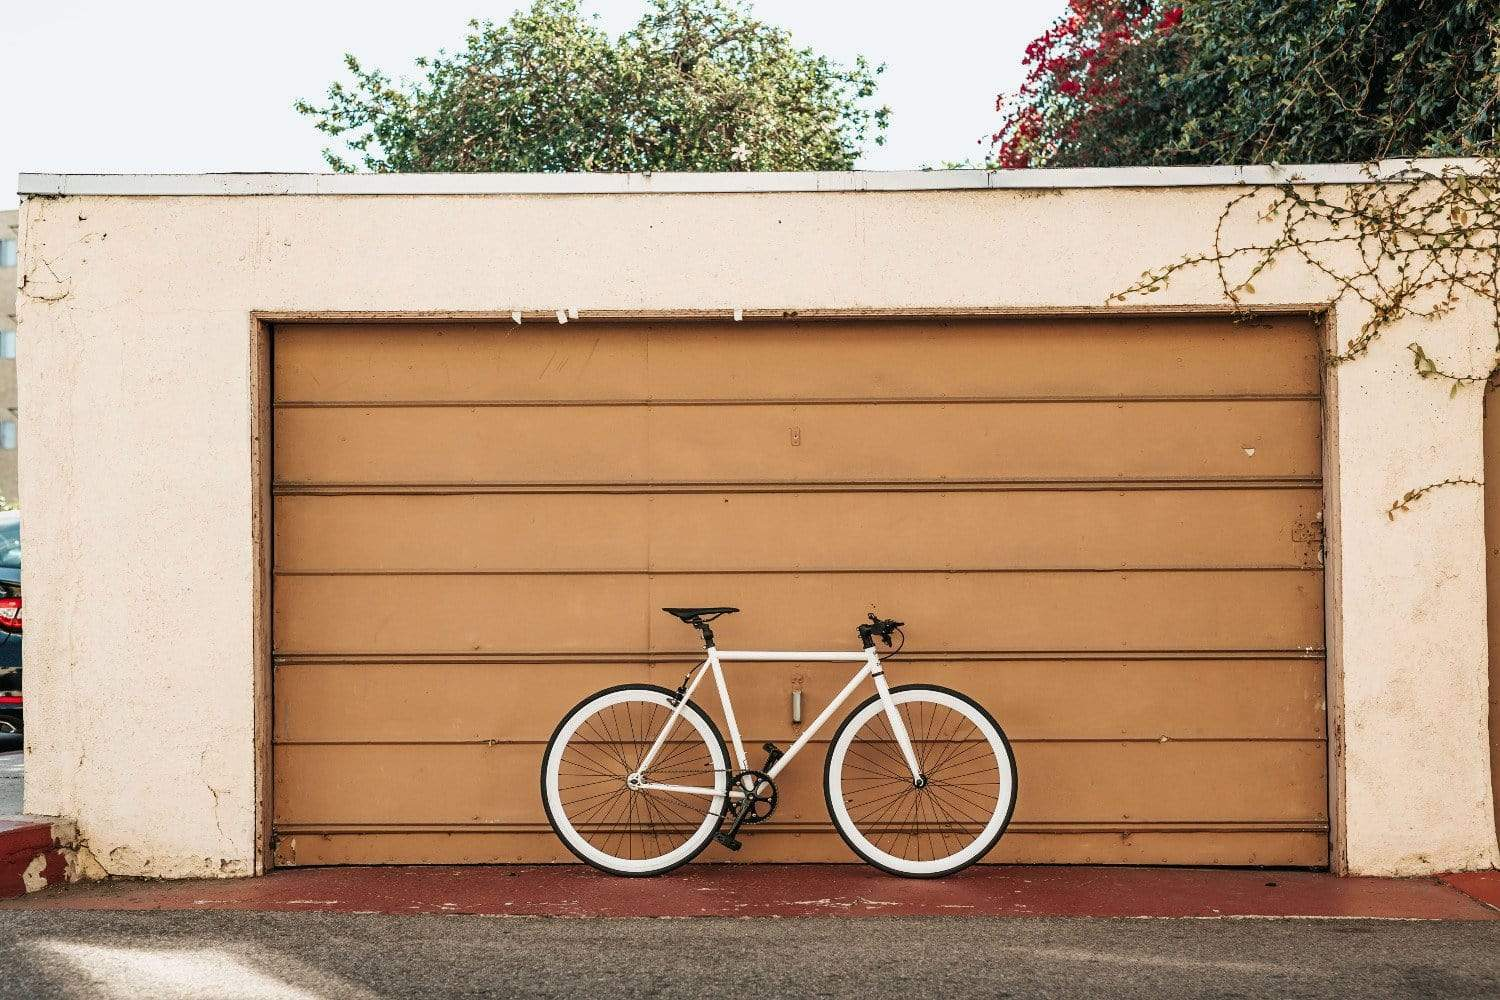 Best Bike Storage For Garage Practical Tips For Storing Your Ride In A Garage Or A Bicycle Shed